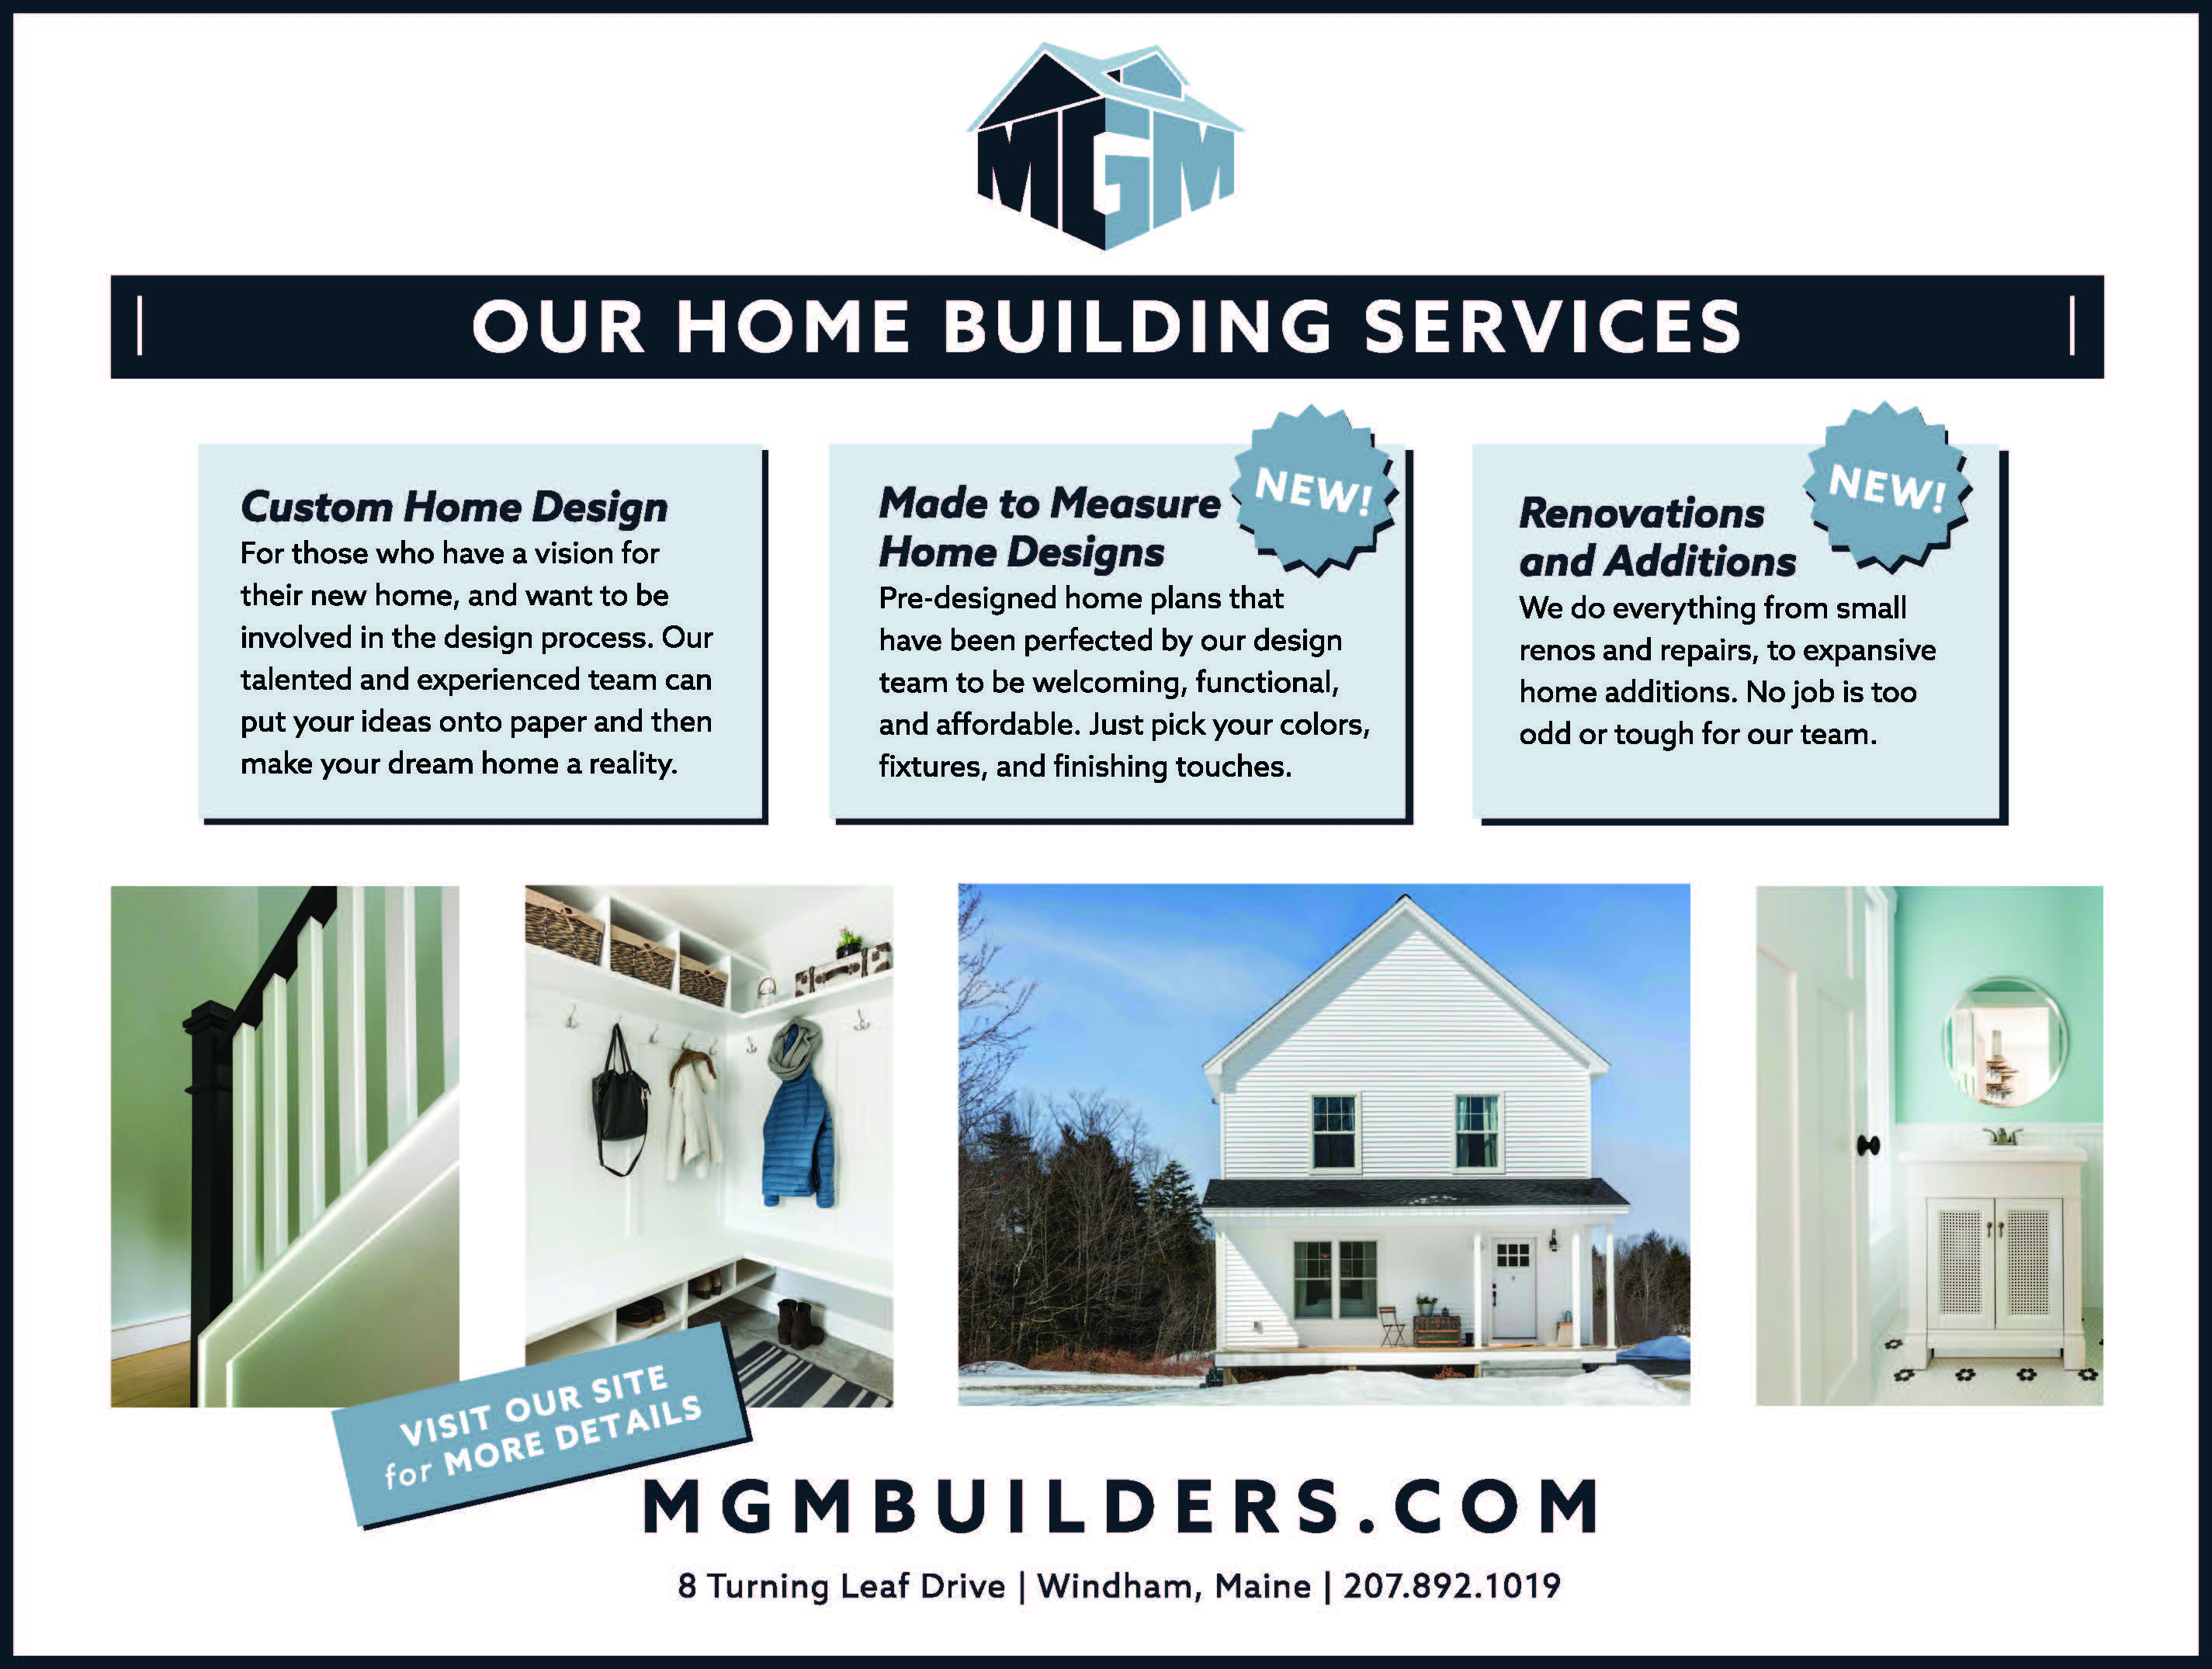 http://mgmbuilders.com/